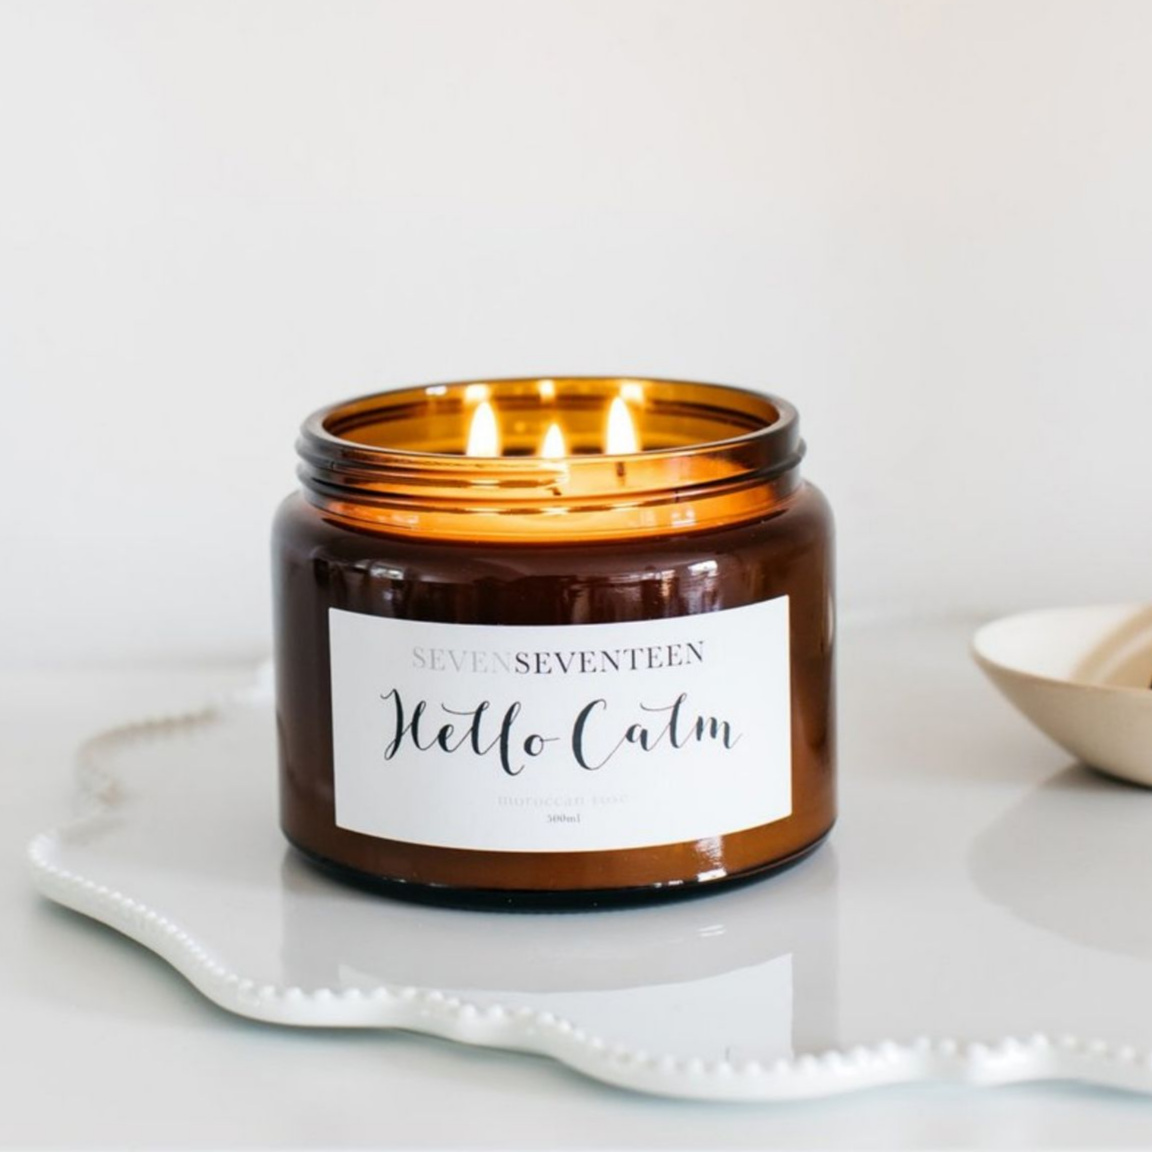 HR273 Hello Calm candle £34.00.jpg